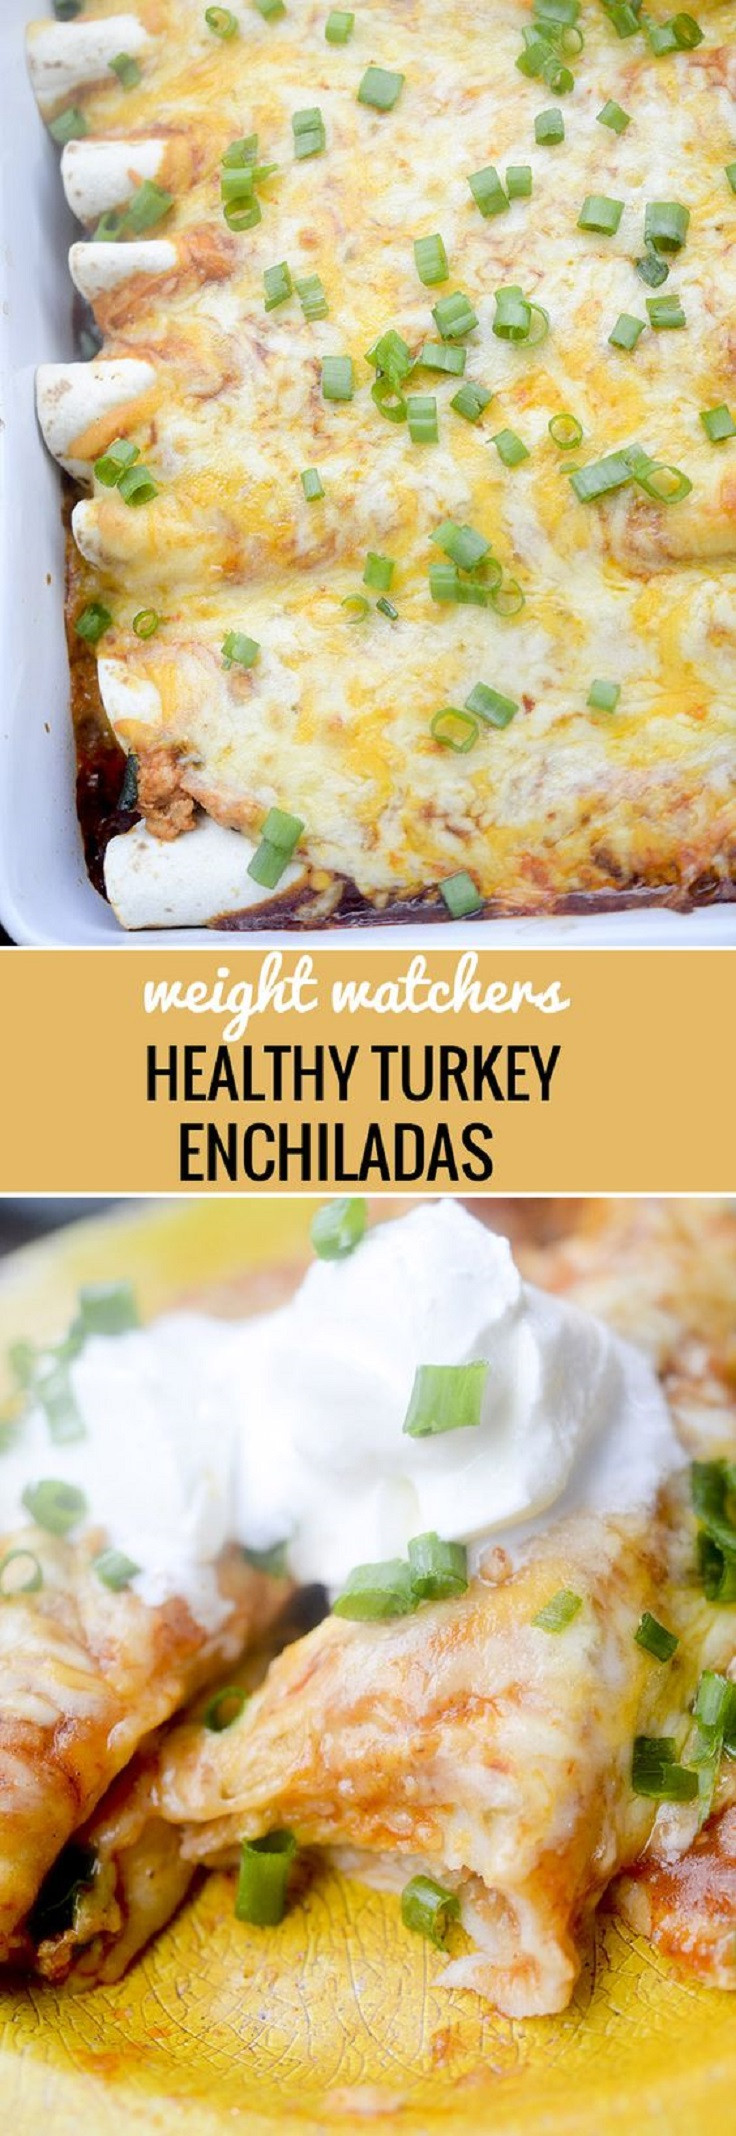 Healthy Turkey Enchiladas  10 Easy and Healthy Summer Dinner Ideas to Tempt Your